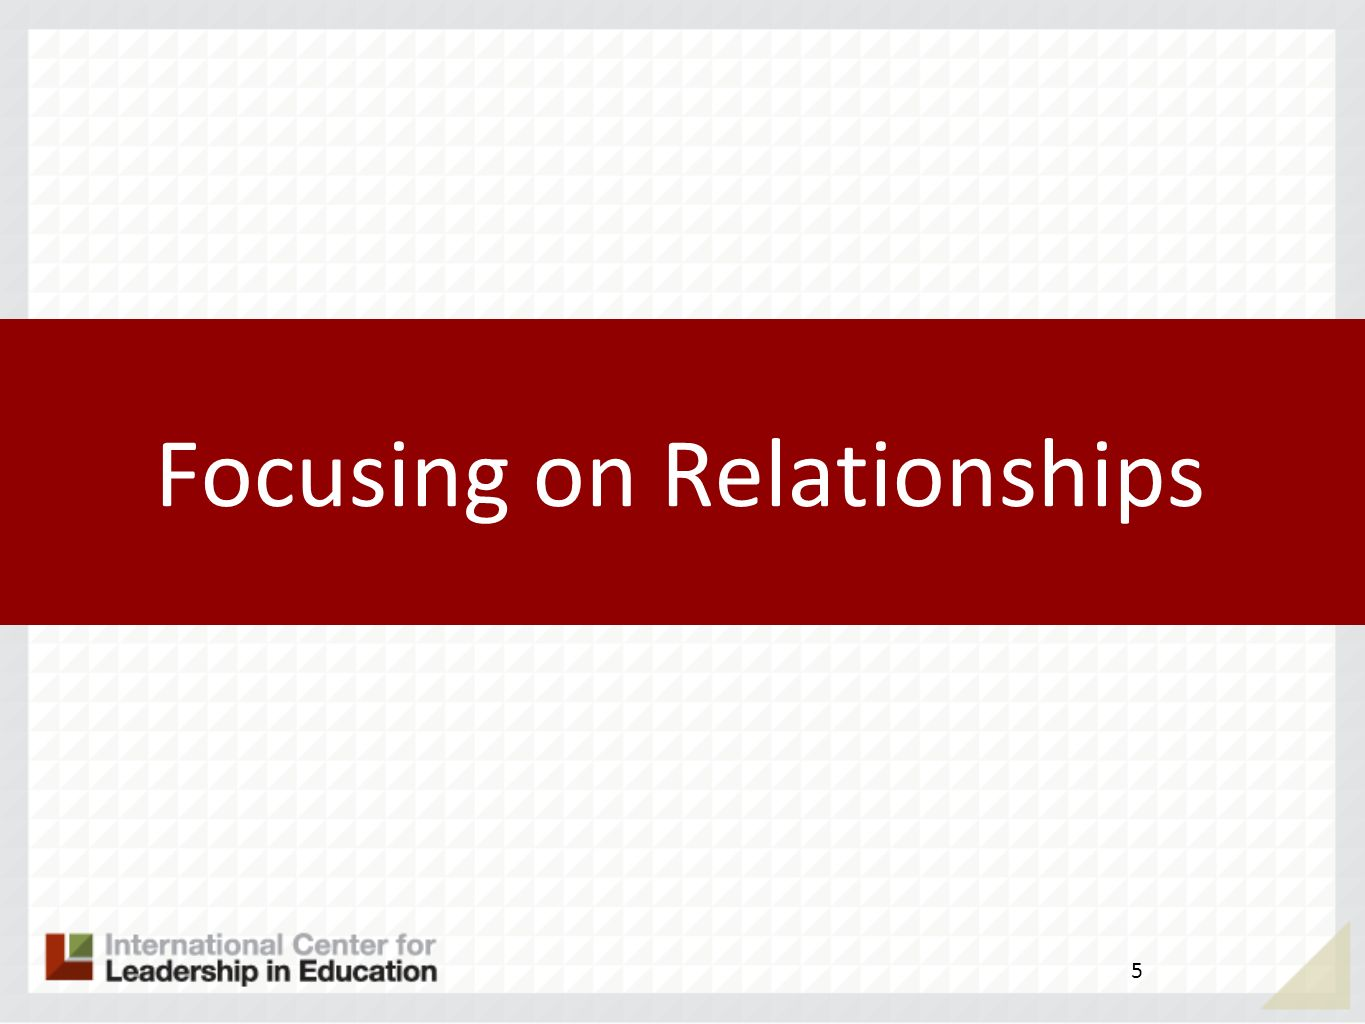 Focusing on Relationships